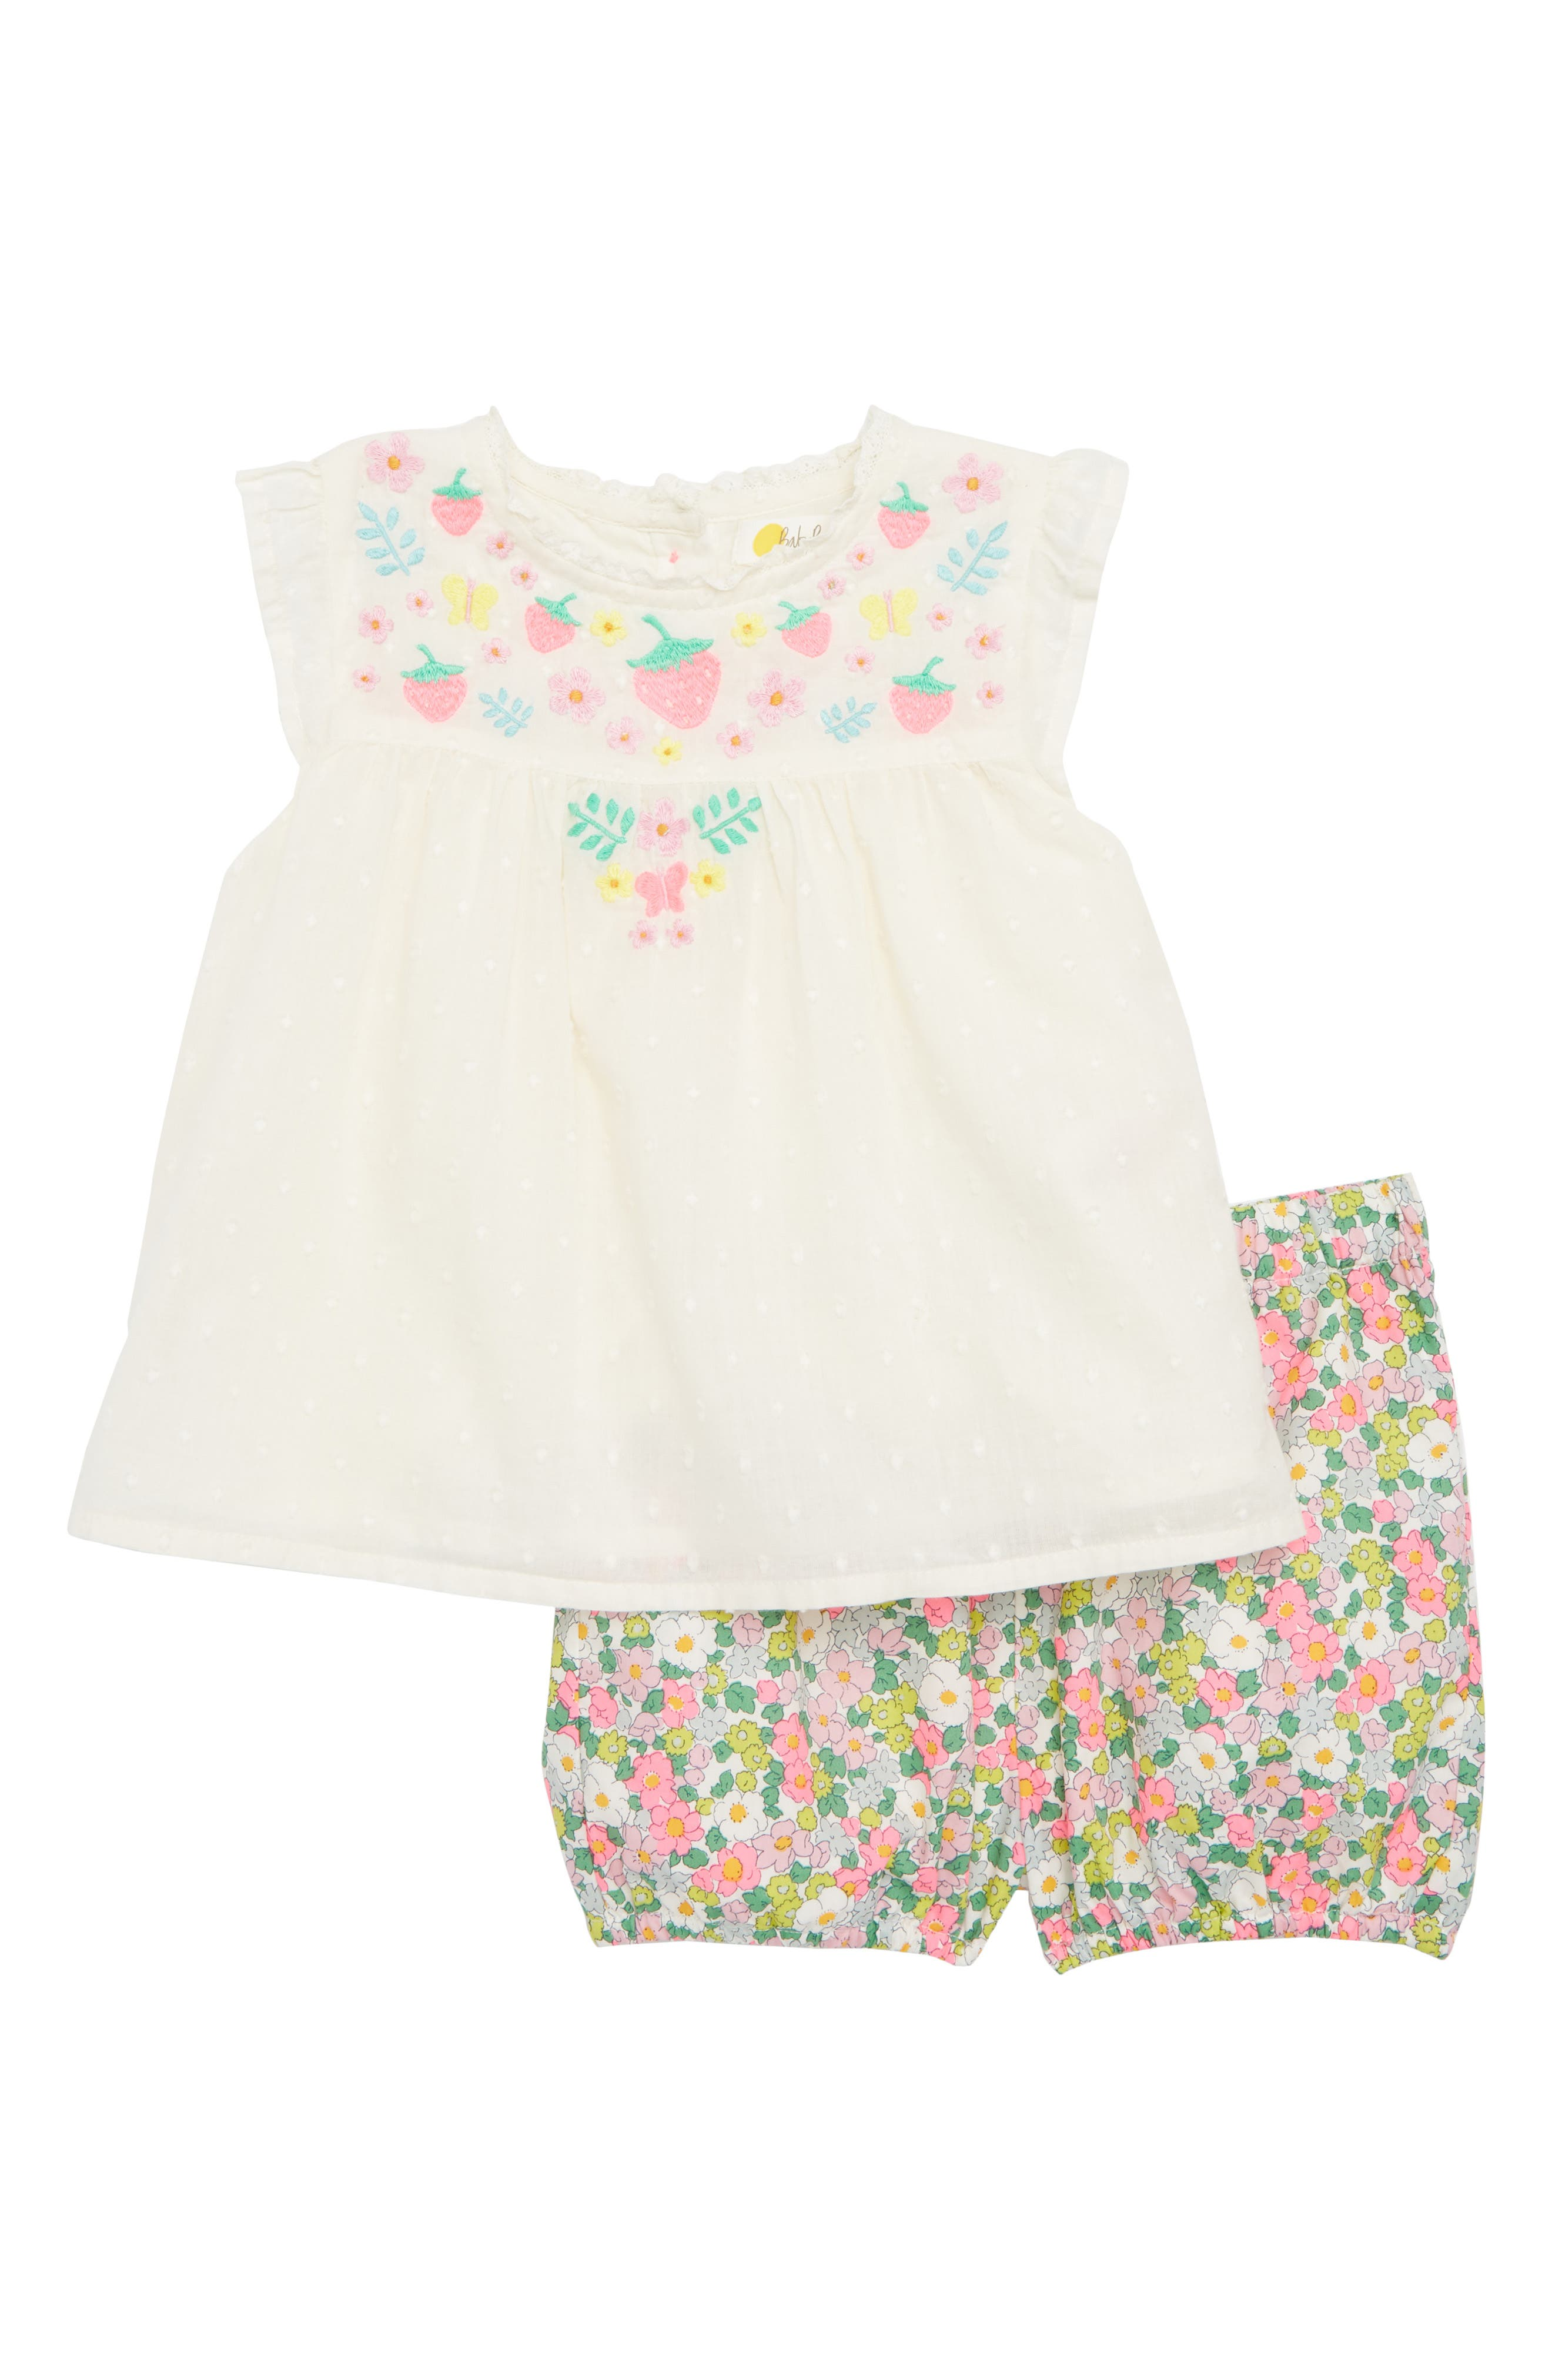 Sunny Days Top & Shorts Set,                             Main thumbnail 1, color,                             Ivory Embroidery